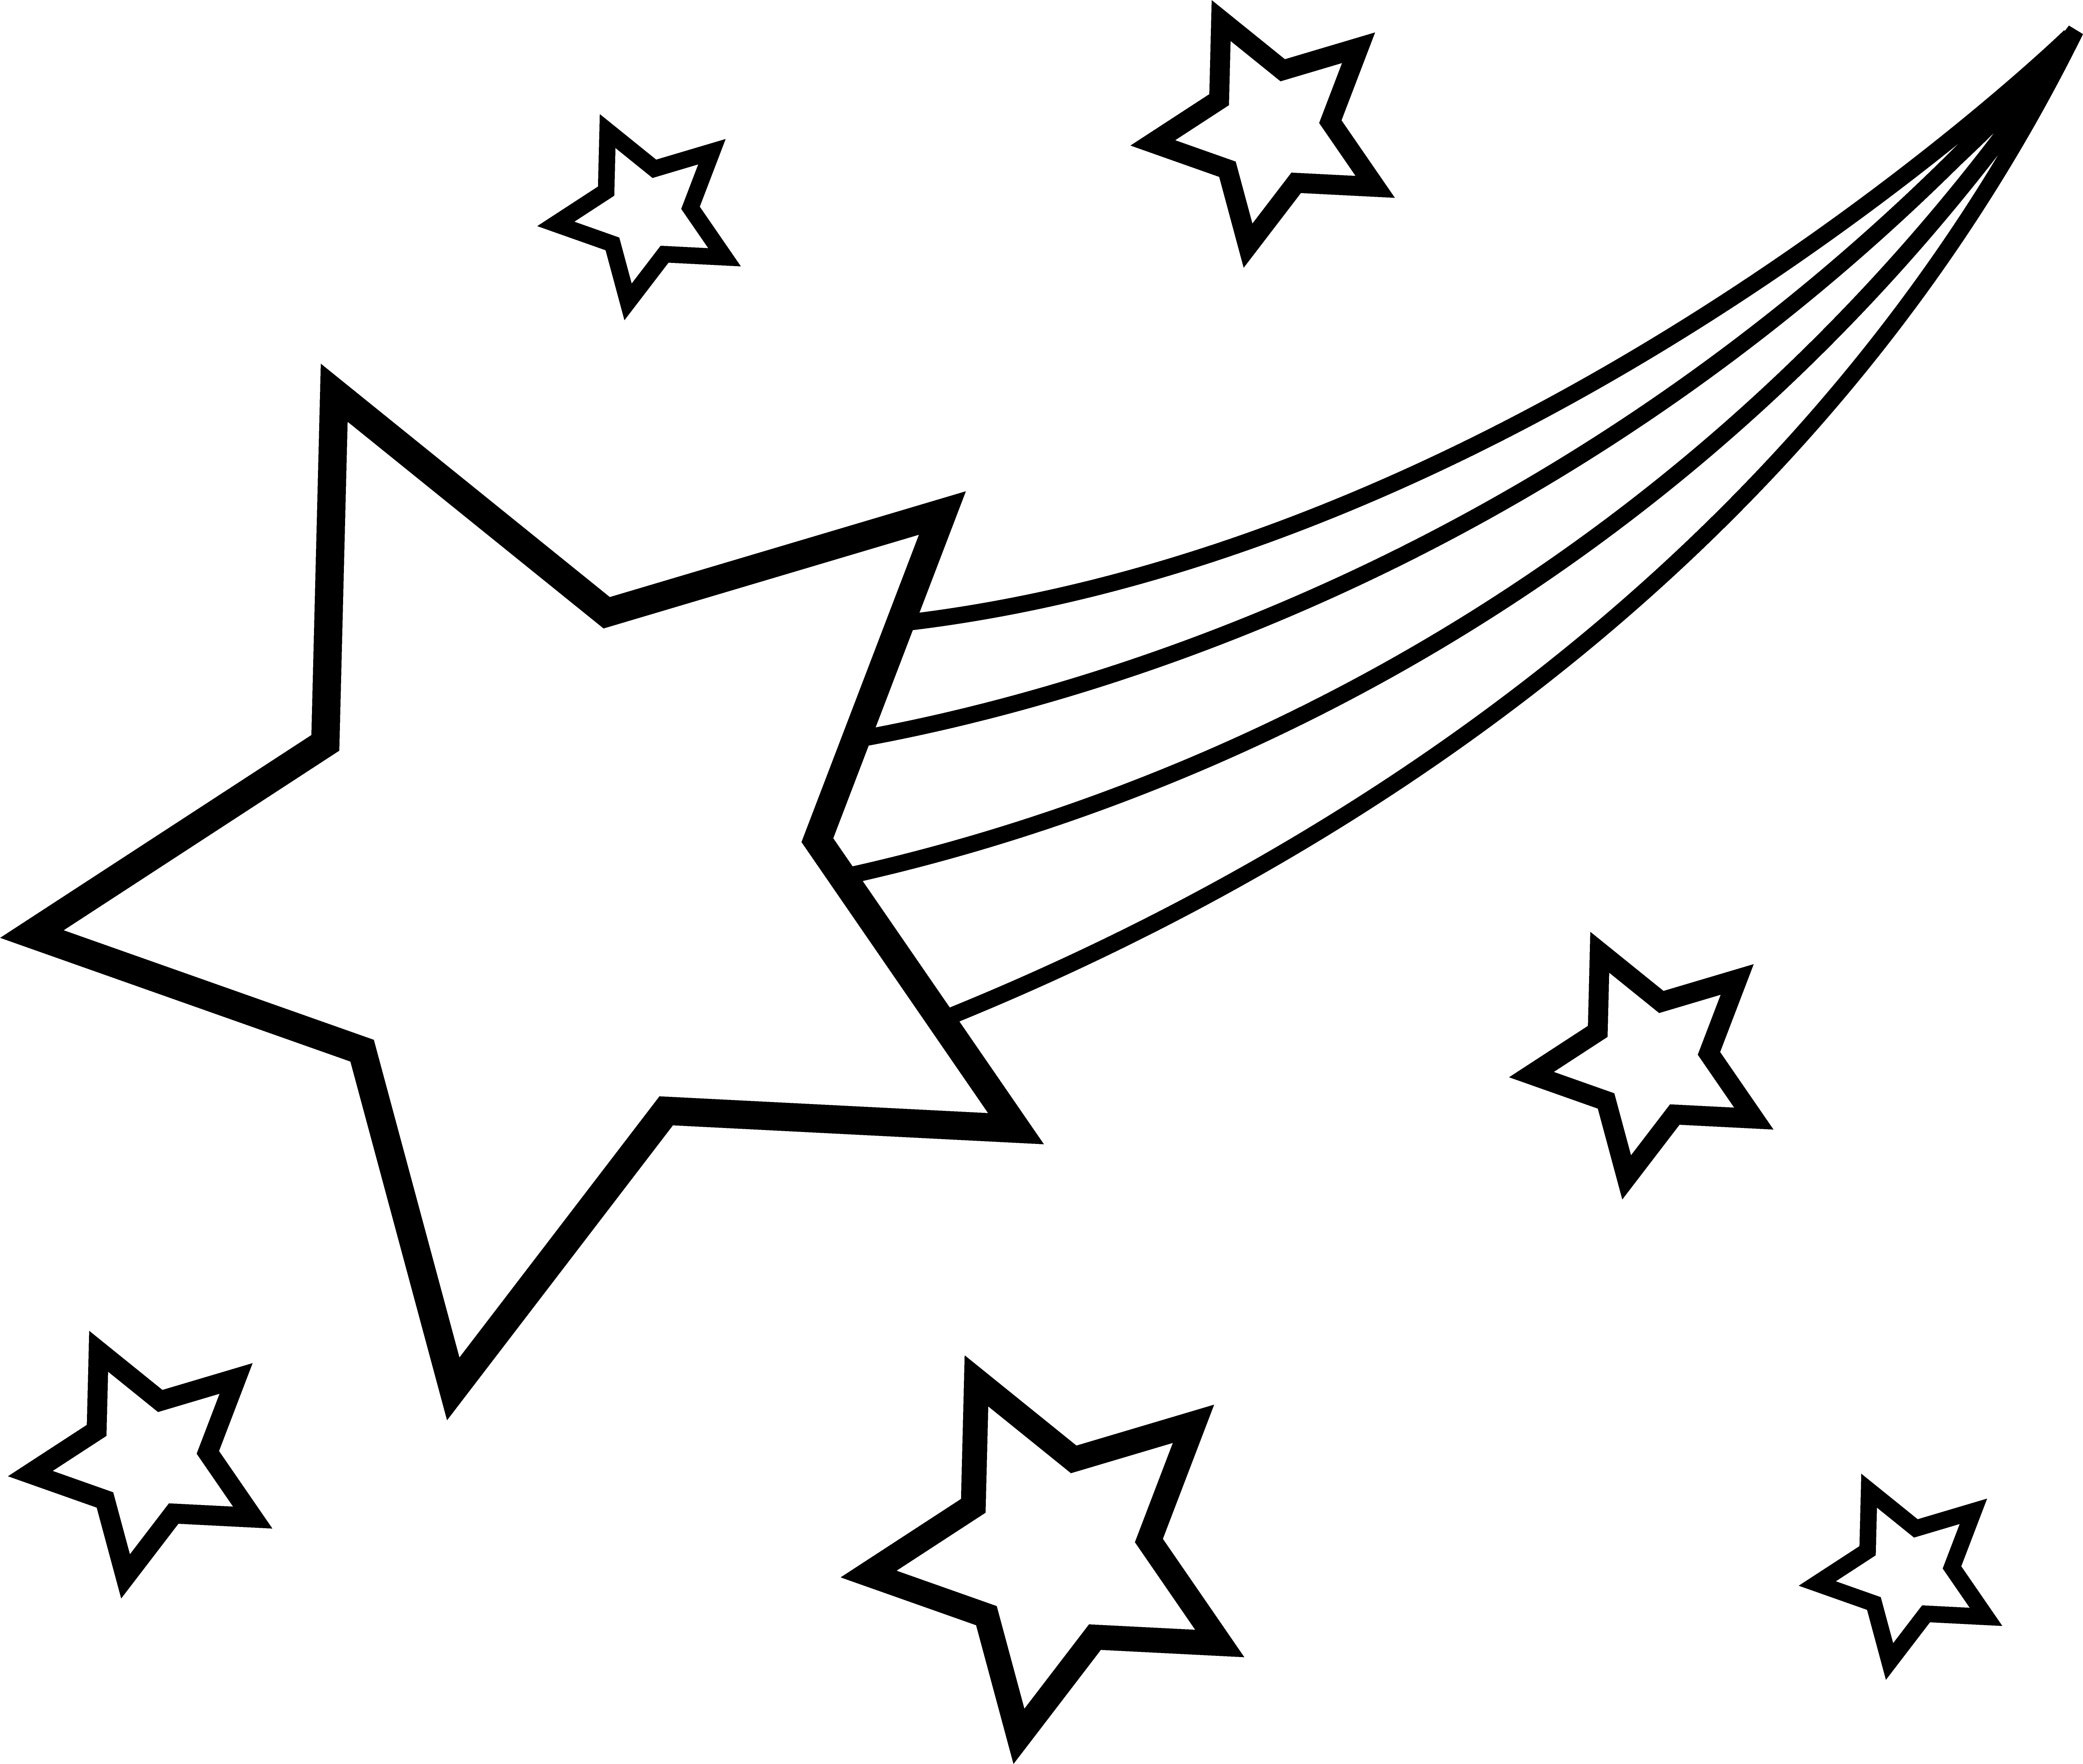 Shooting Star Clipart & Shooting Star Clip Art Images.